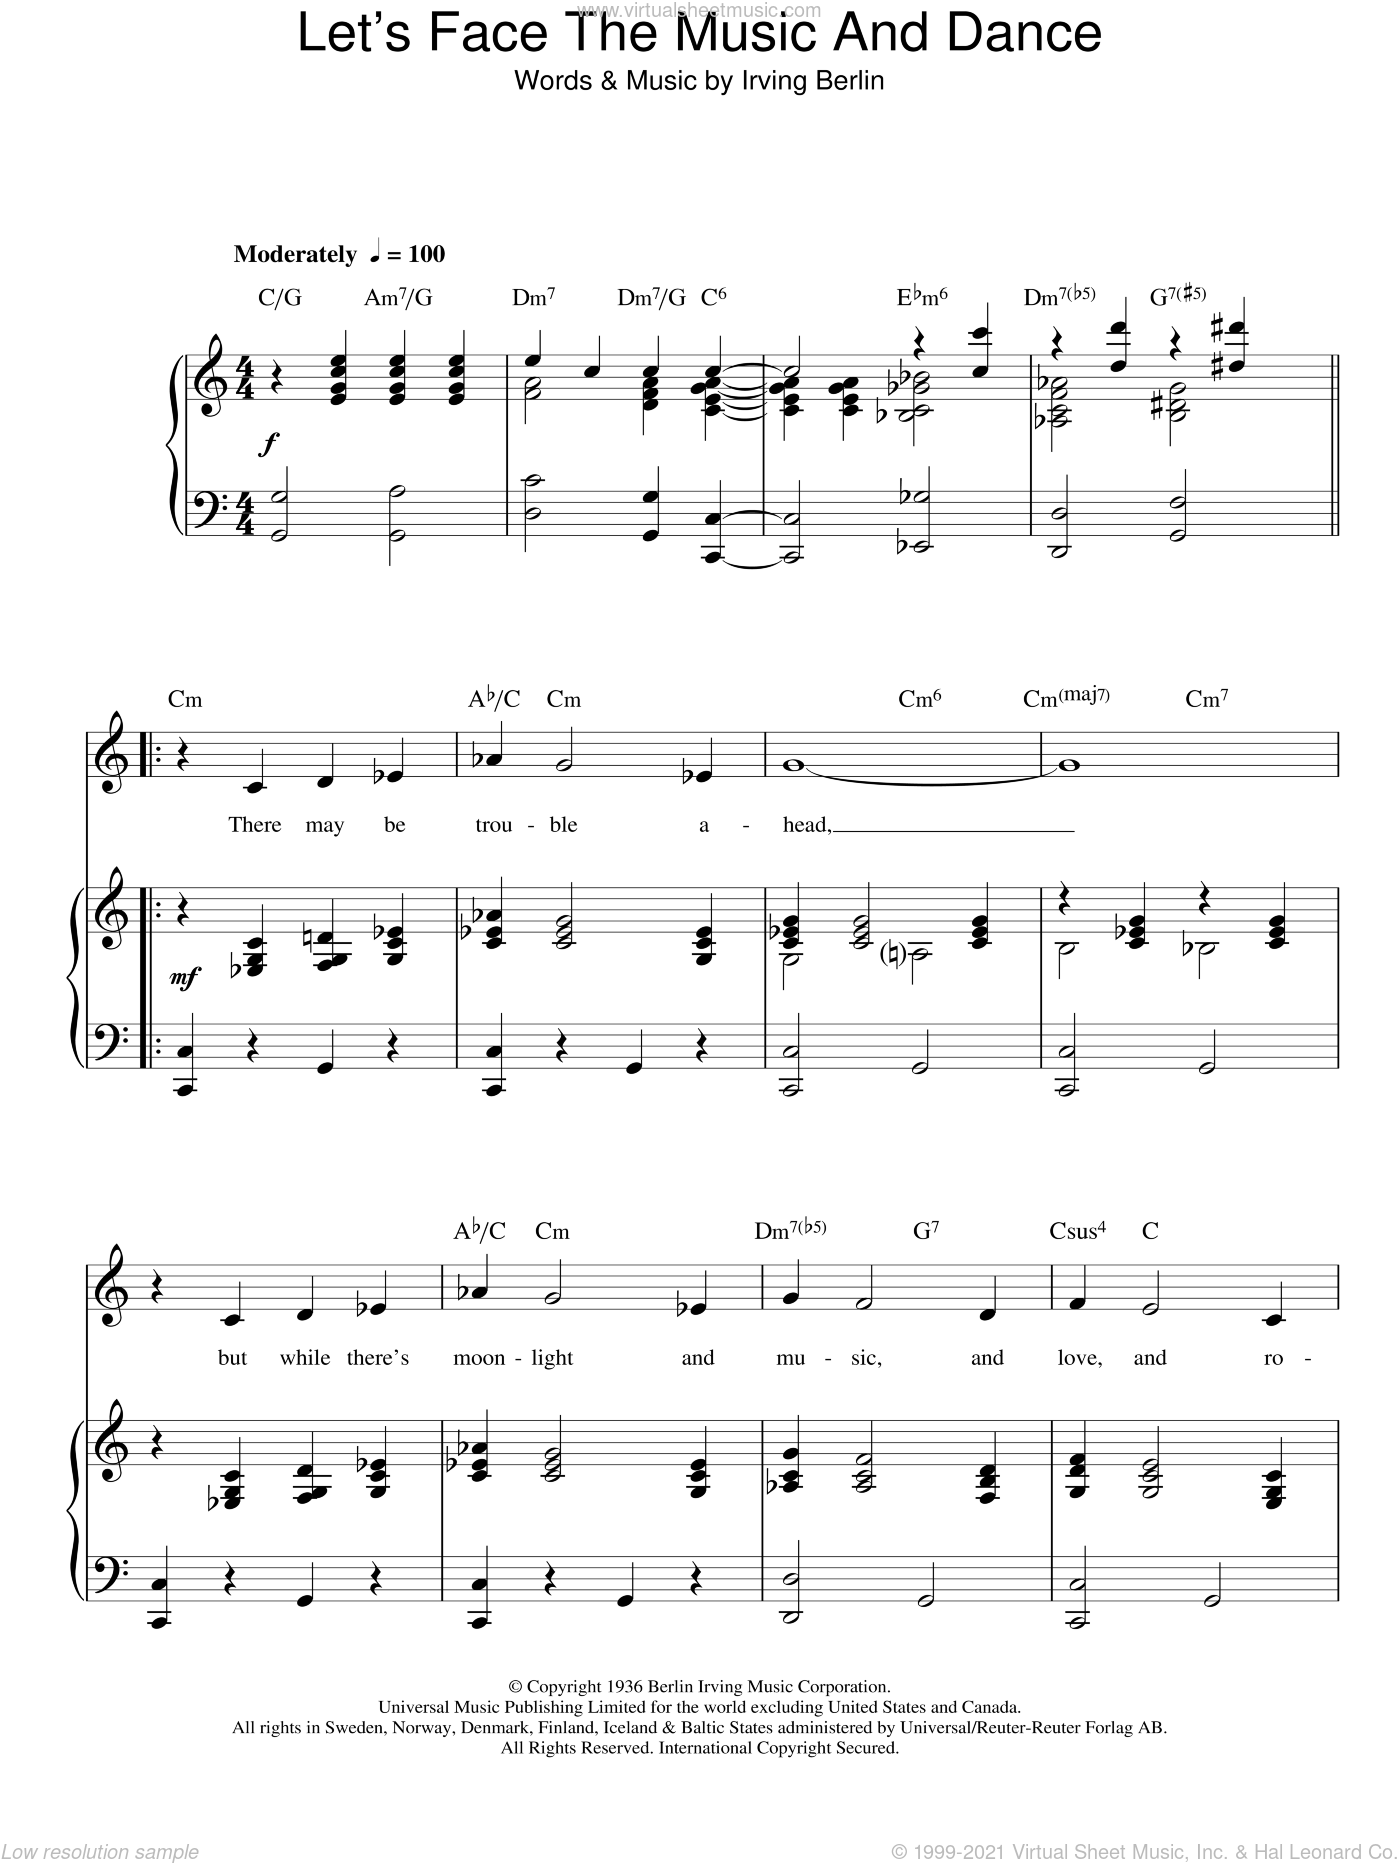 Let's Face The Music And Dance sheet music for voice, piano or guitar by Irving Berlin. Score Image Preview.